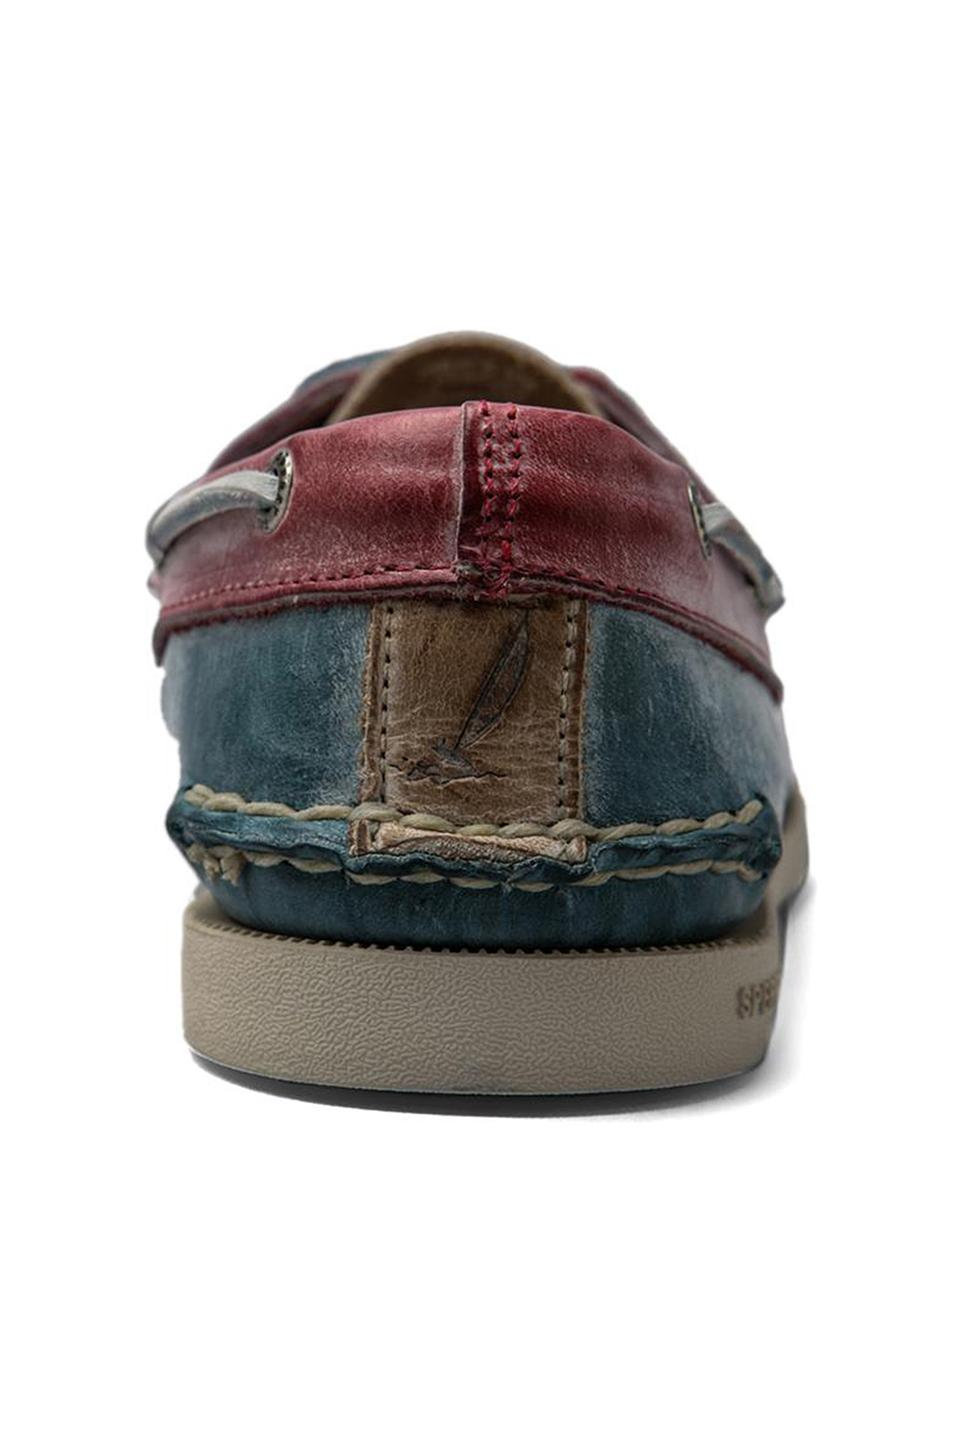 Sperry Top-Sider A/O 2-Eye White Wash in Blue/Tan/Red